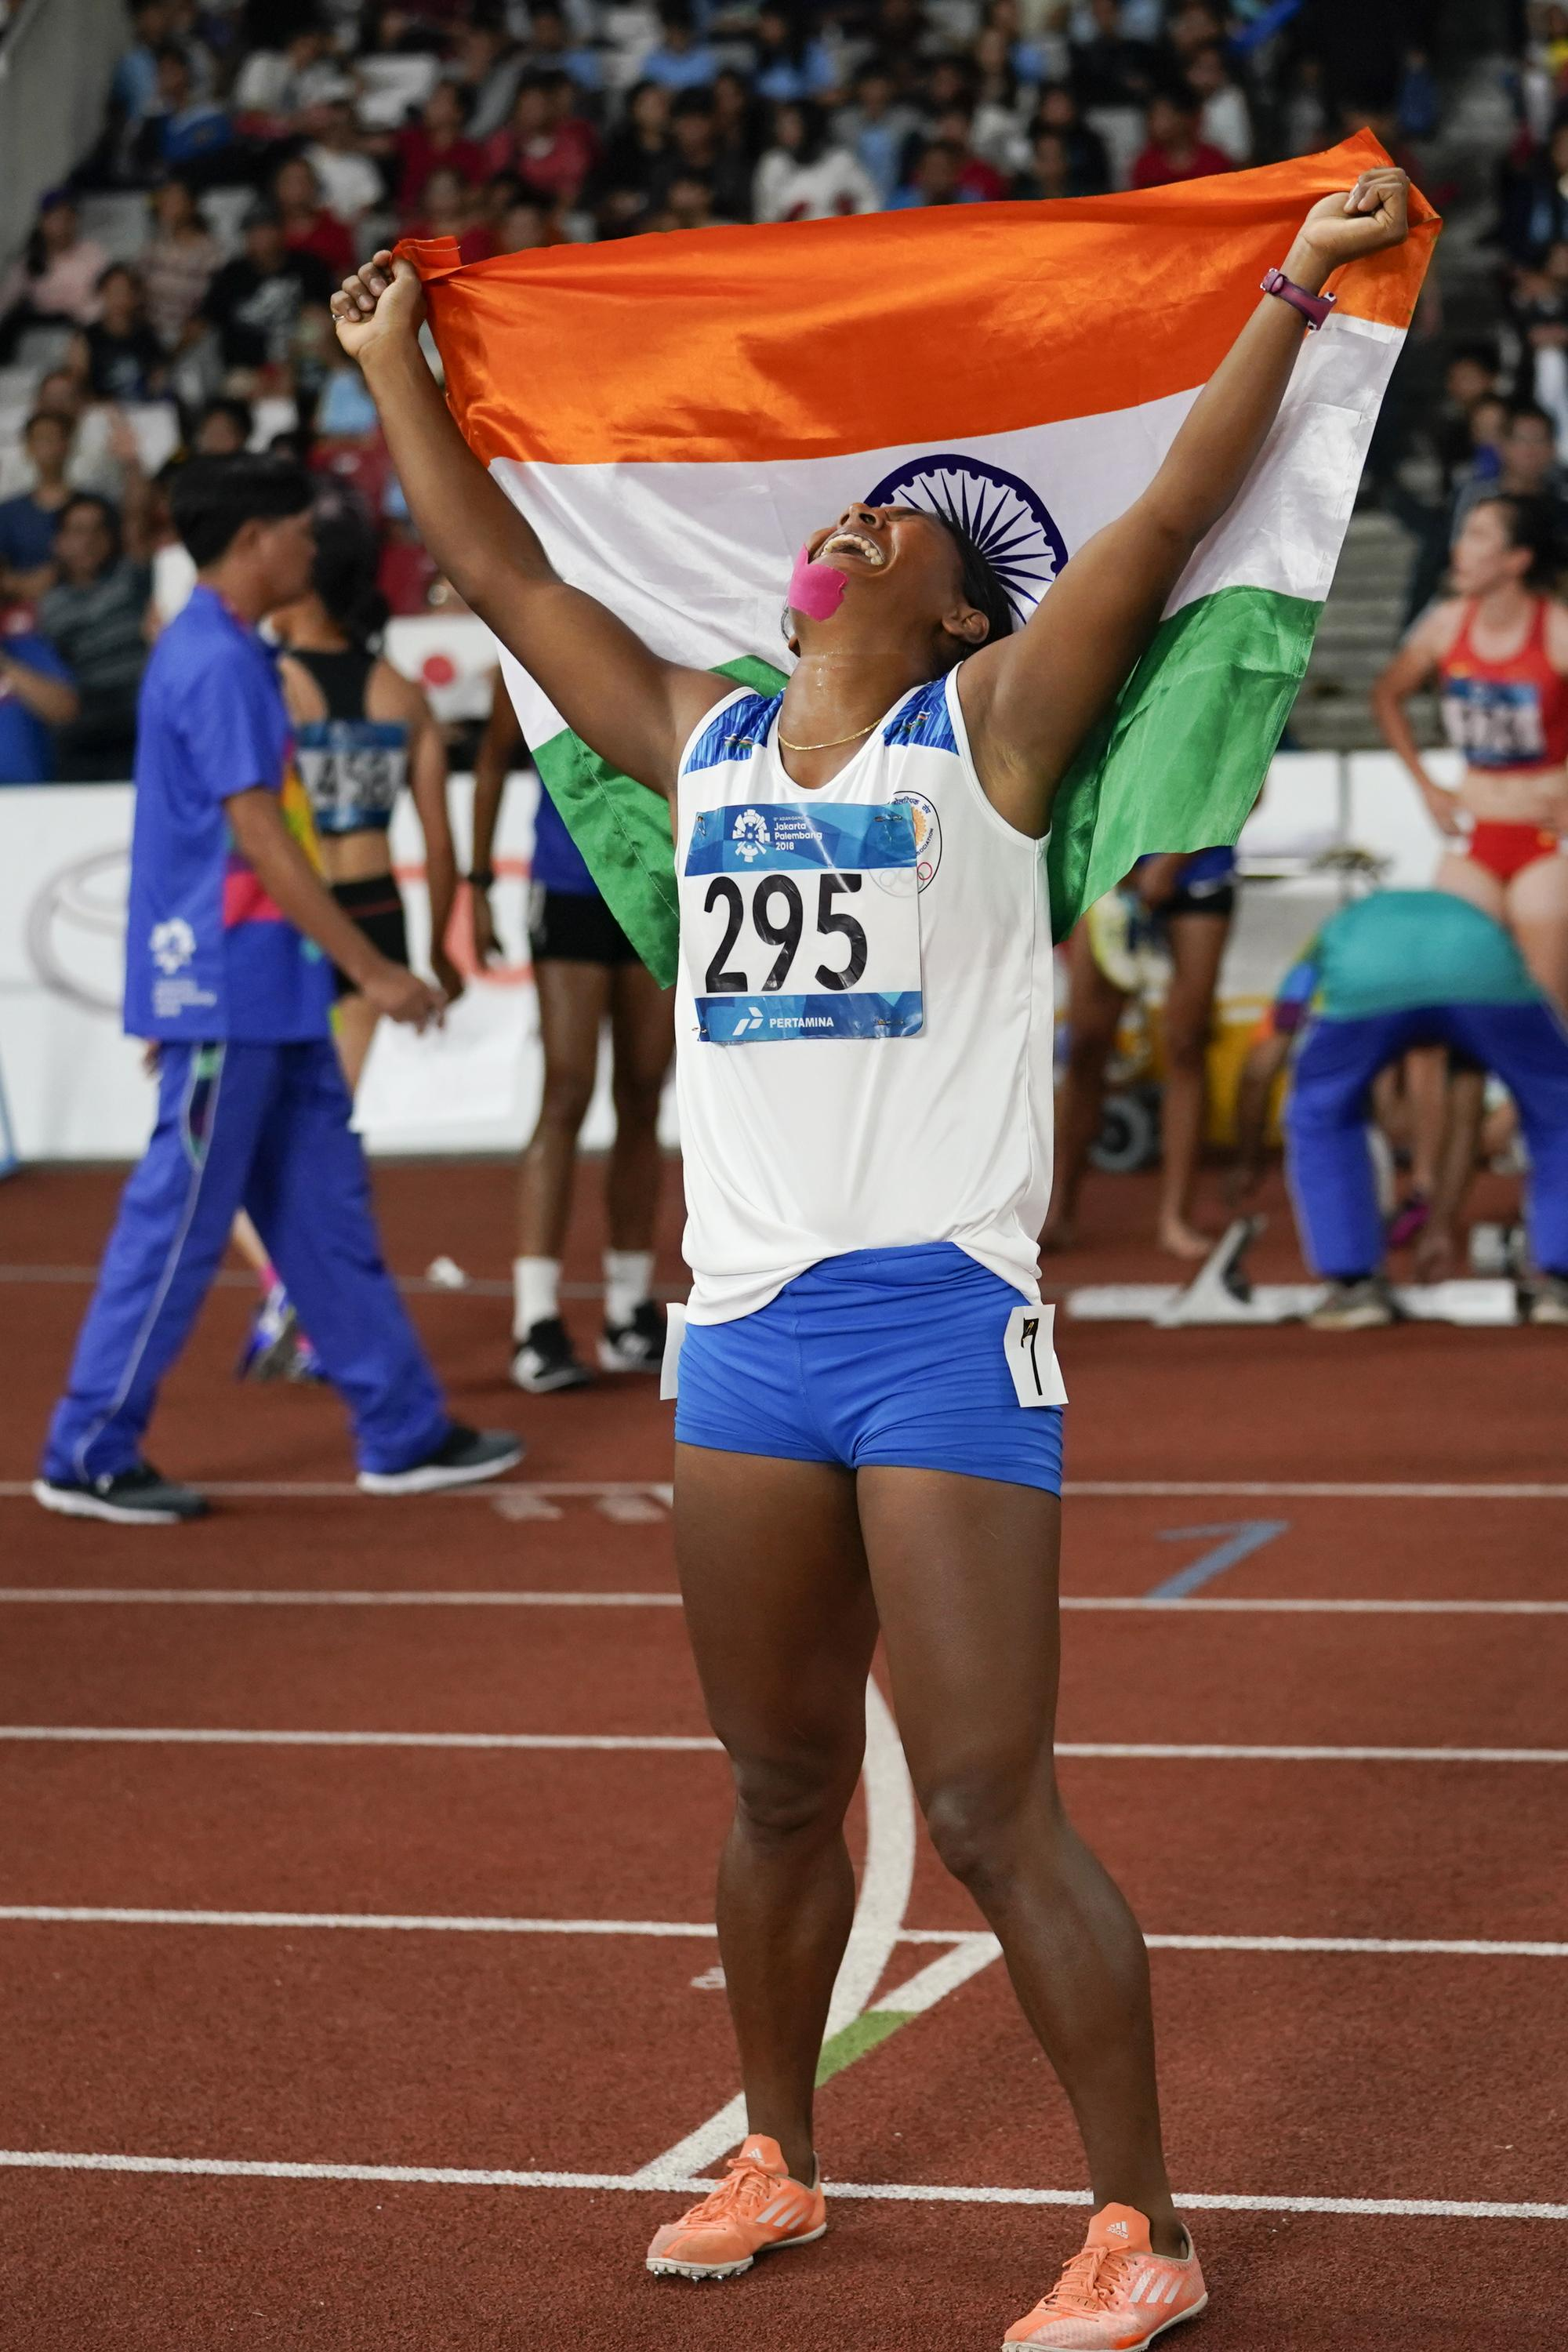 Swapna Barman from India won the regional Olympics last week